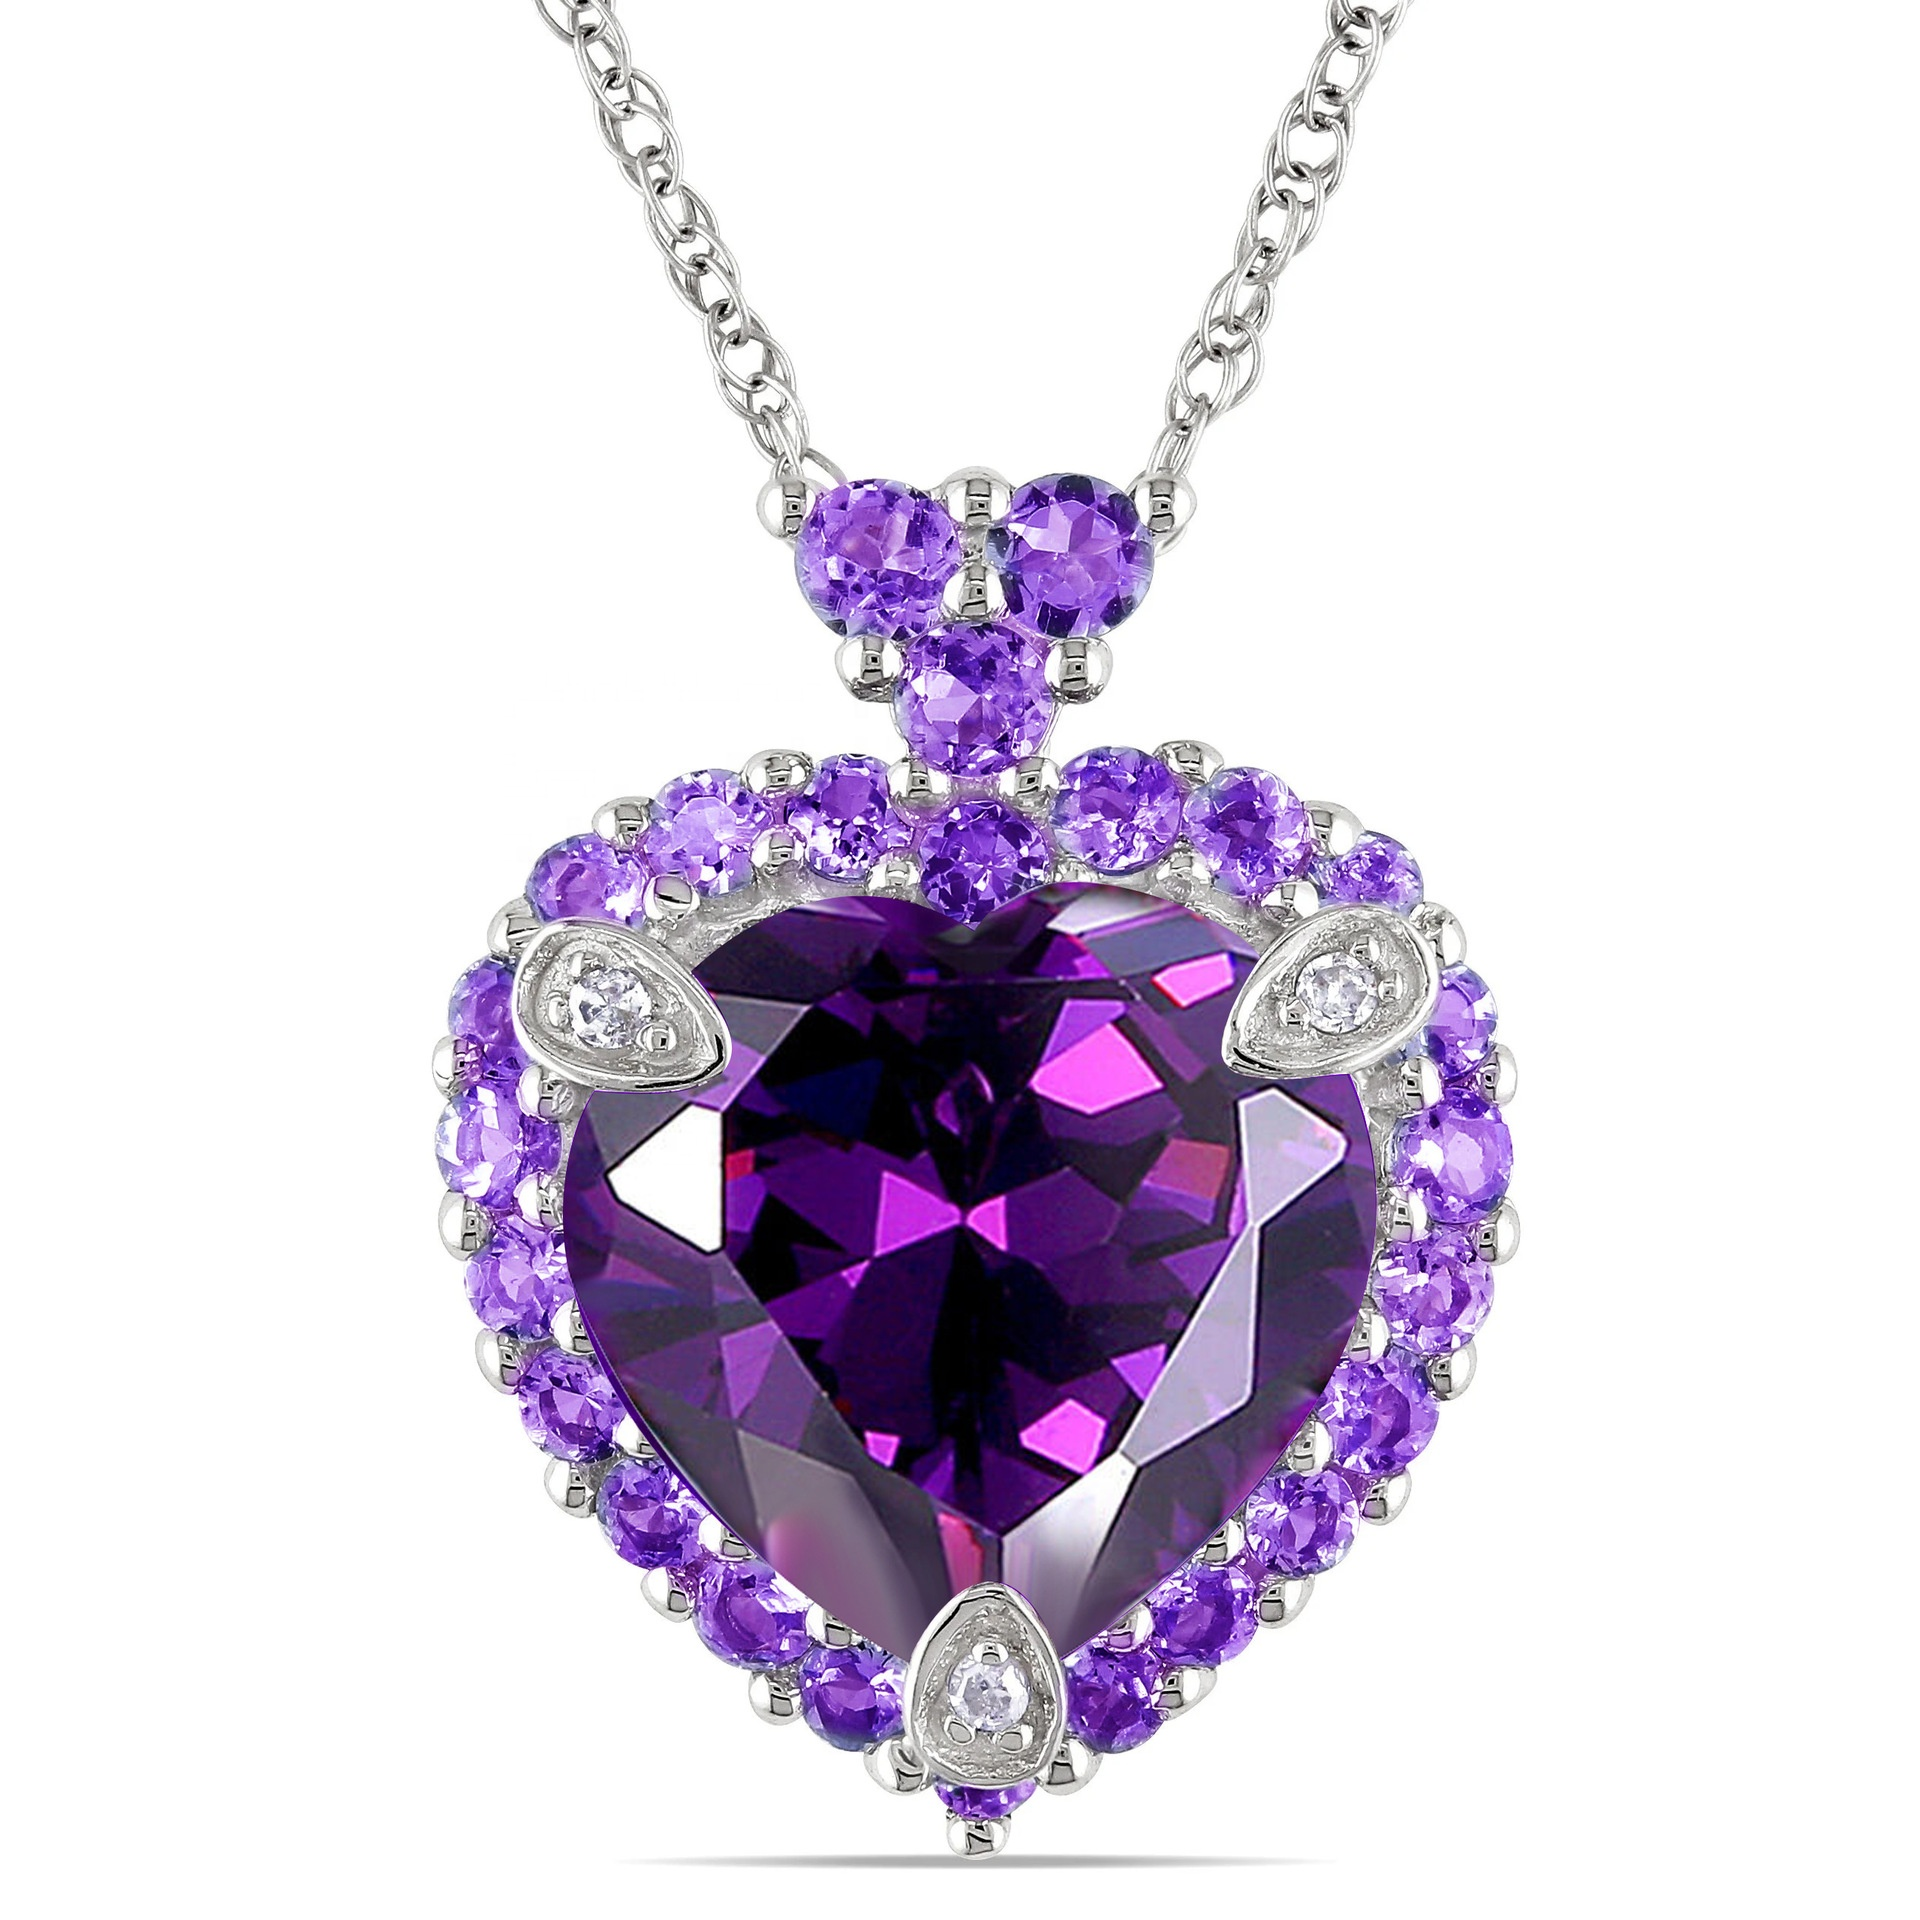 Unique Jewelry Romantic Love Heart <strong>Natural</strong> Purple <strong>Amethysts</strong> Crystal <strong>Pendant</strong> for Valentine's Day Necklace